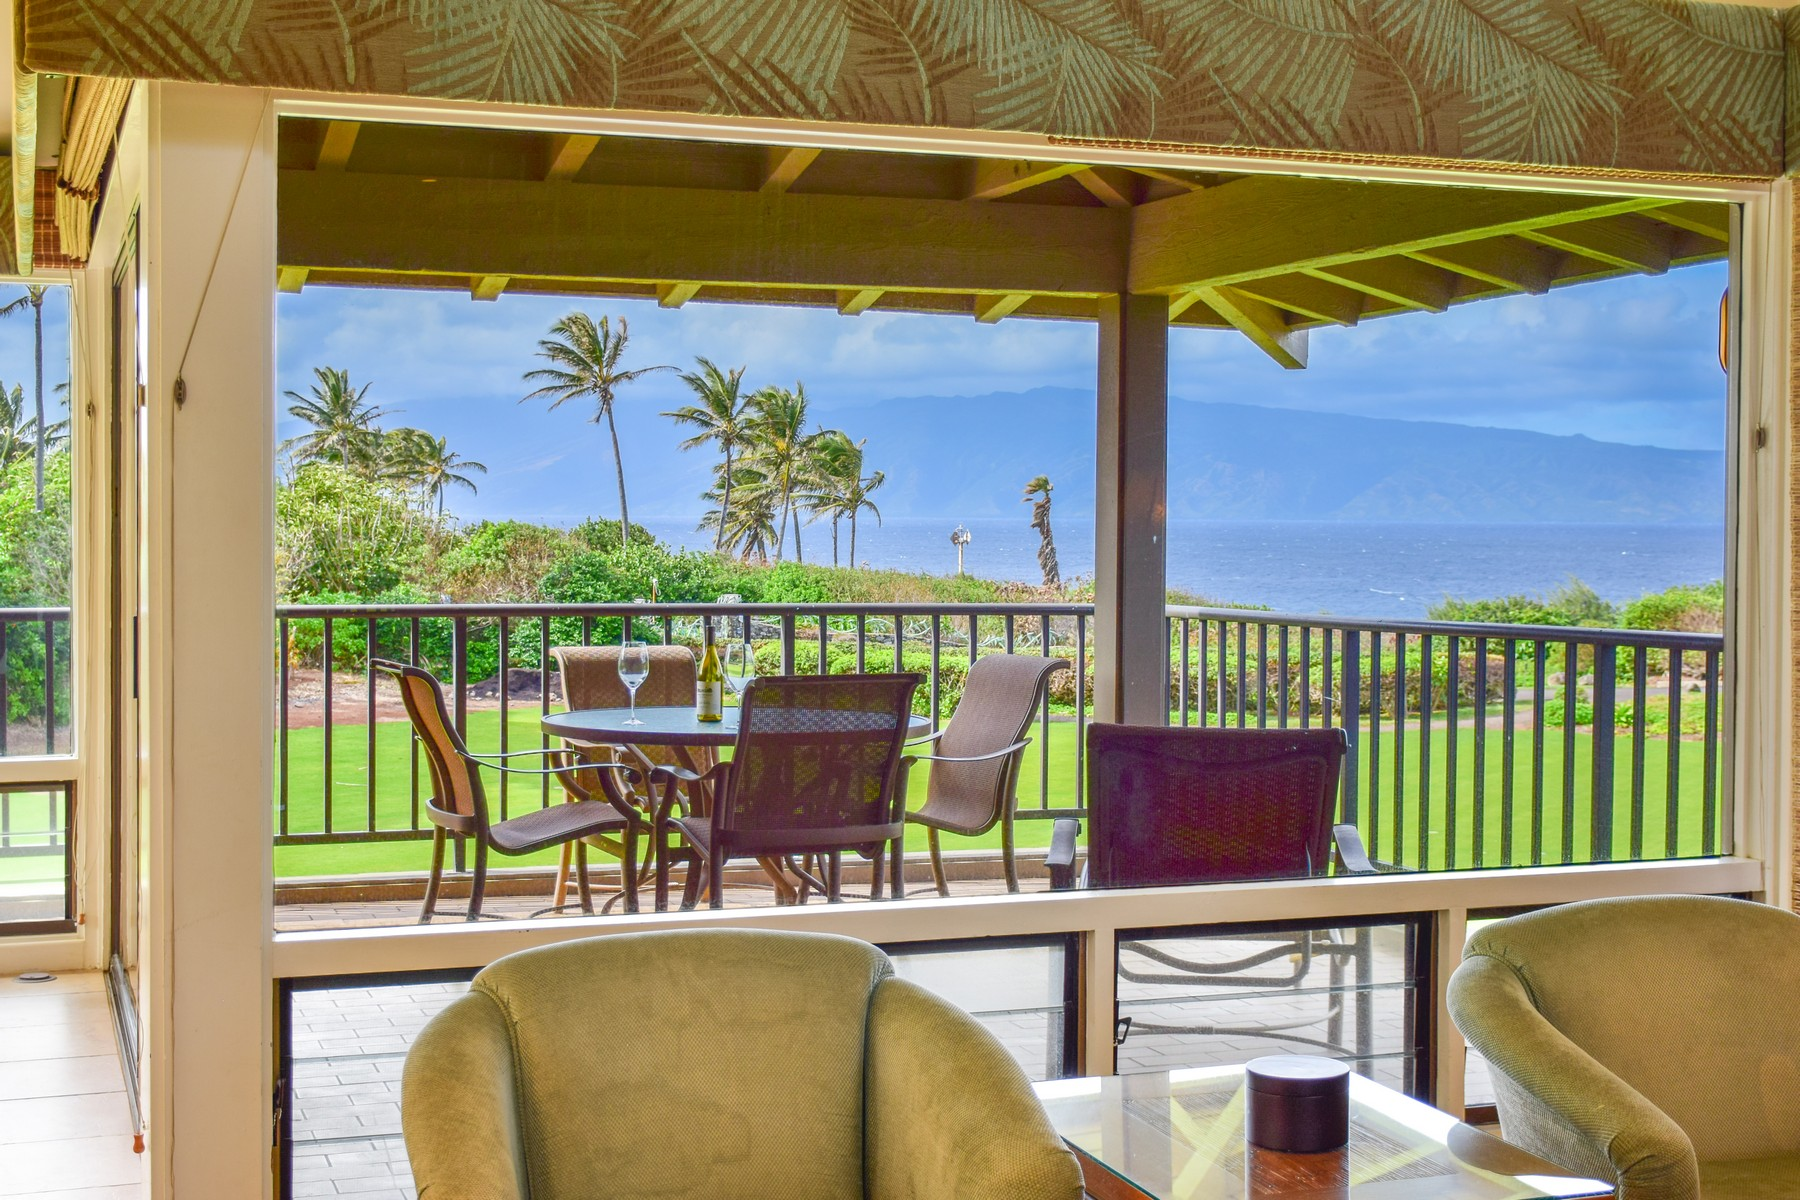 Condomínio para Venda às HIGH PERFORMING TWO BEDROOM BAY VILLA 500 Bay Dr, #38B2 Lahaina, Havaí 96761 Estados Unidos